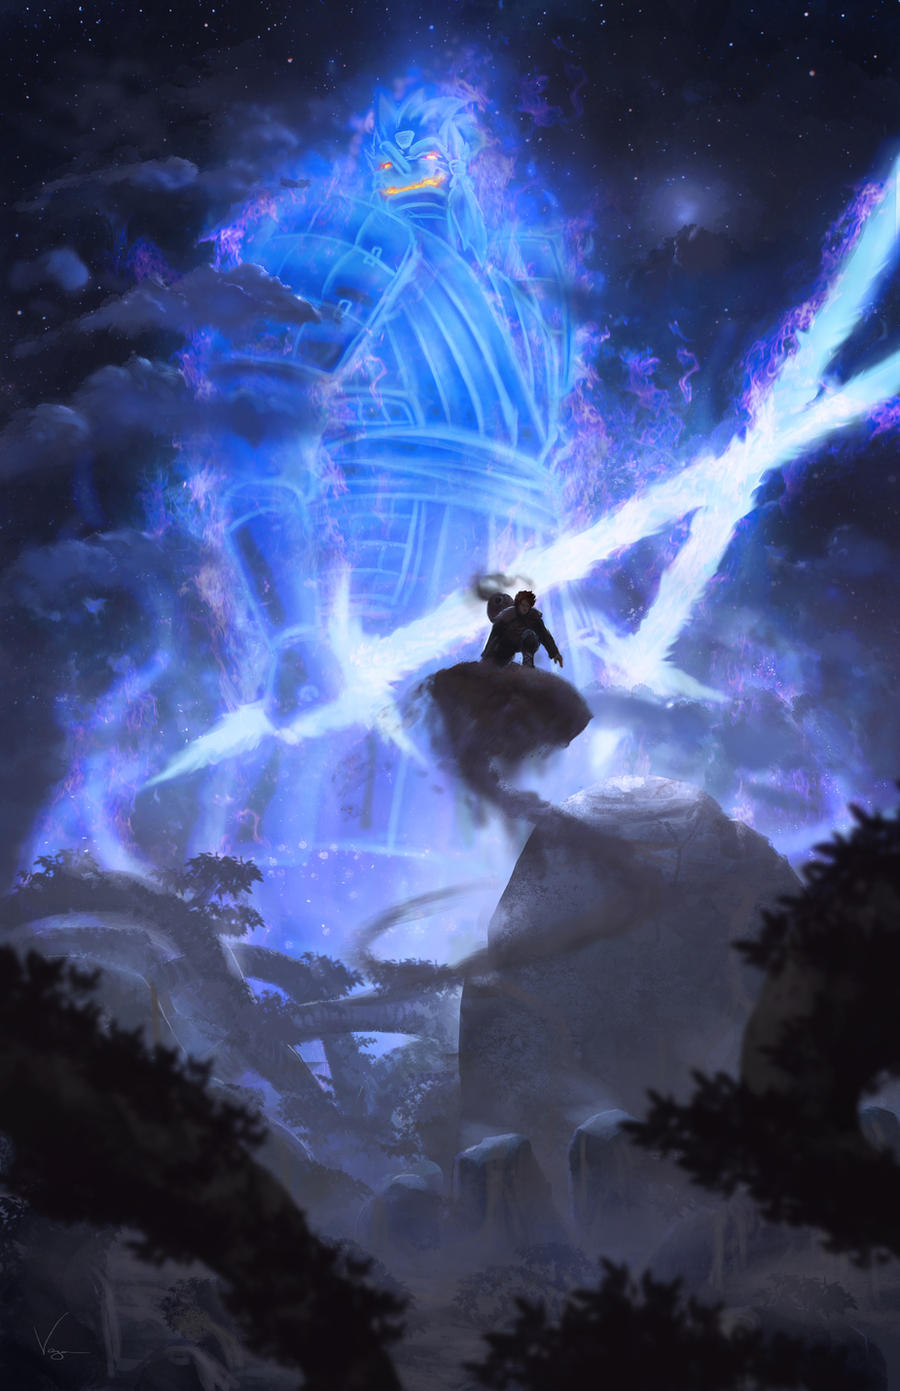 Post your favorite susano'o fanarts